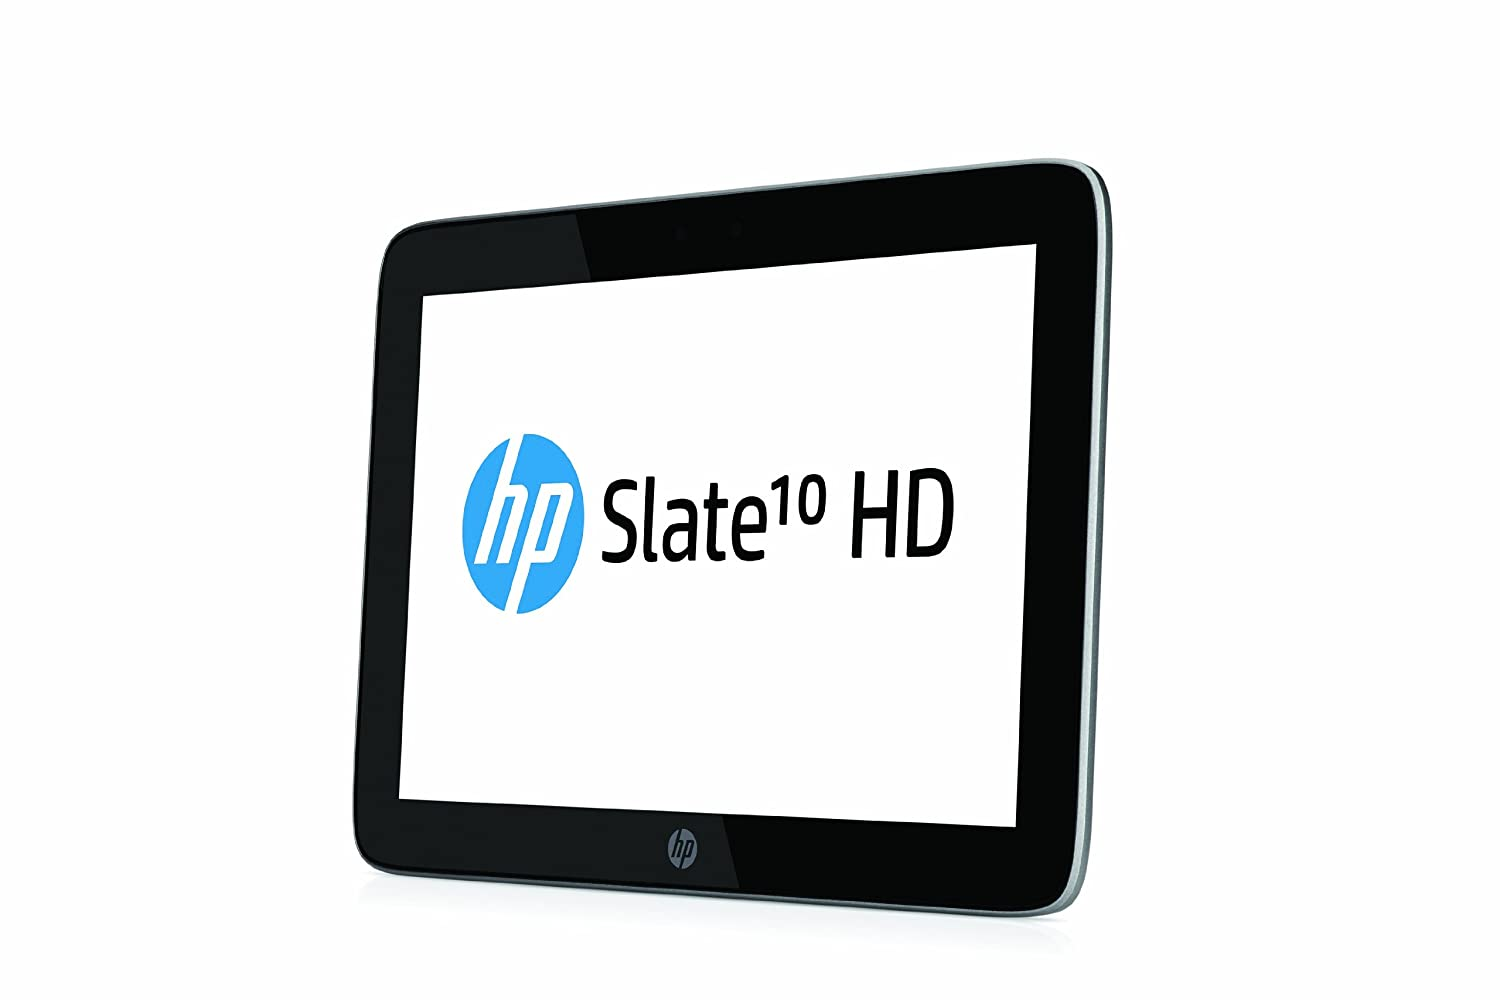 HP Slate 10 HD Tablet PC price in Pakistan, HP in Pakistan